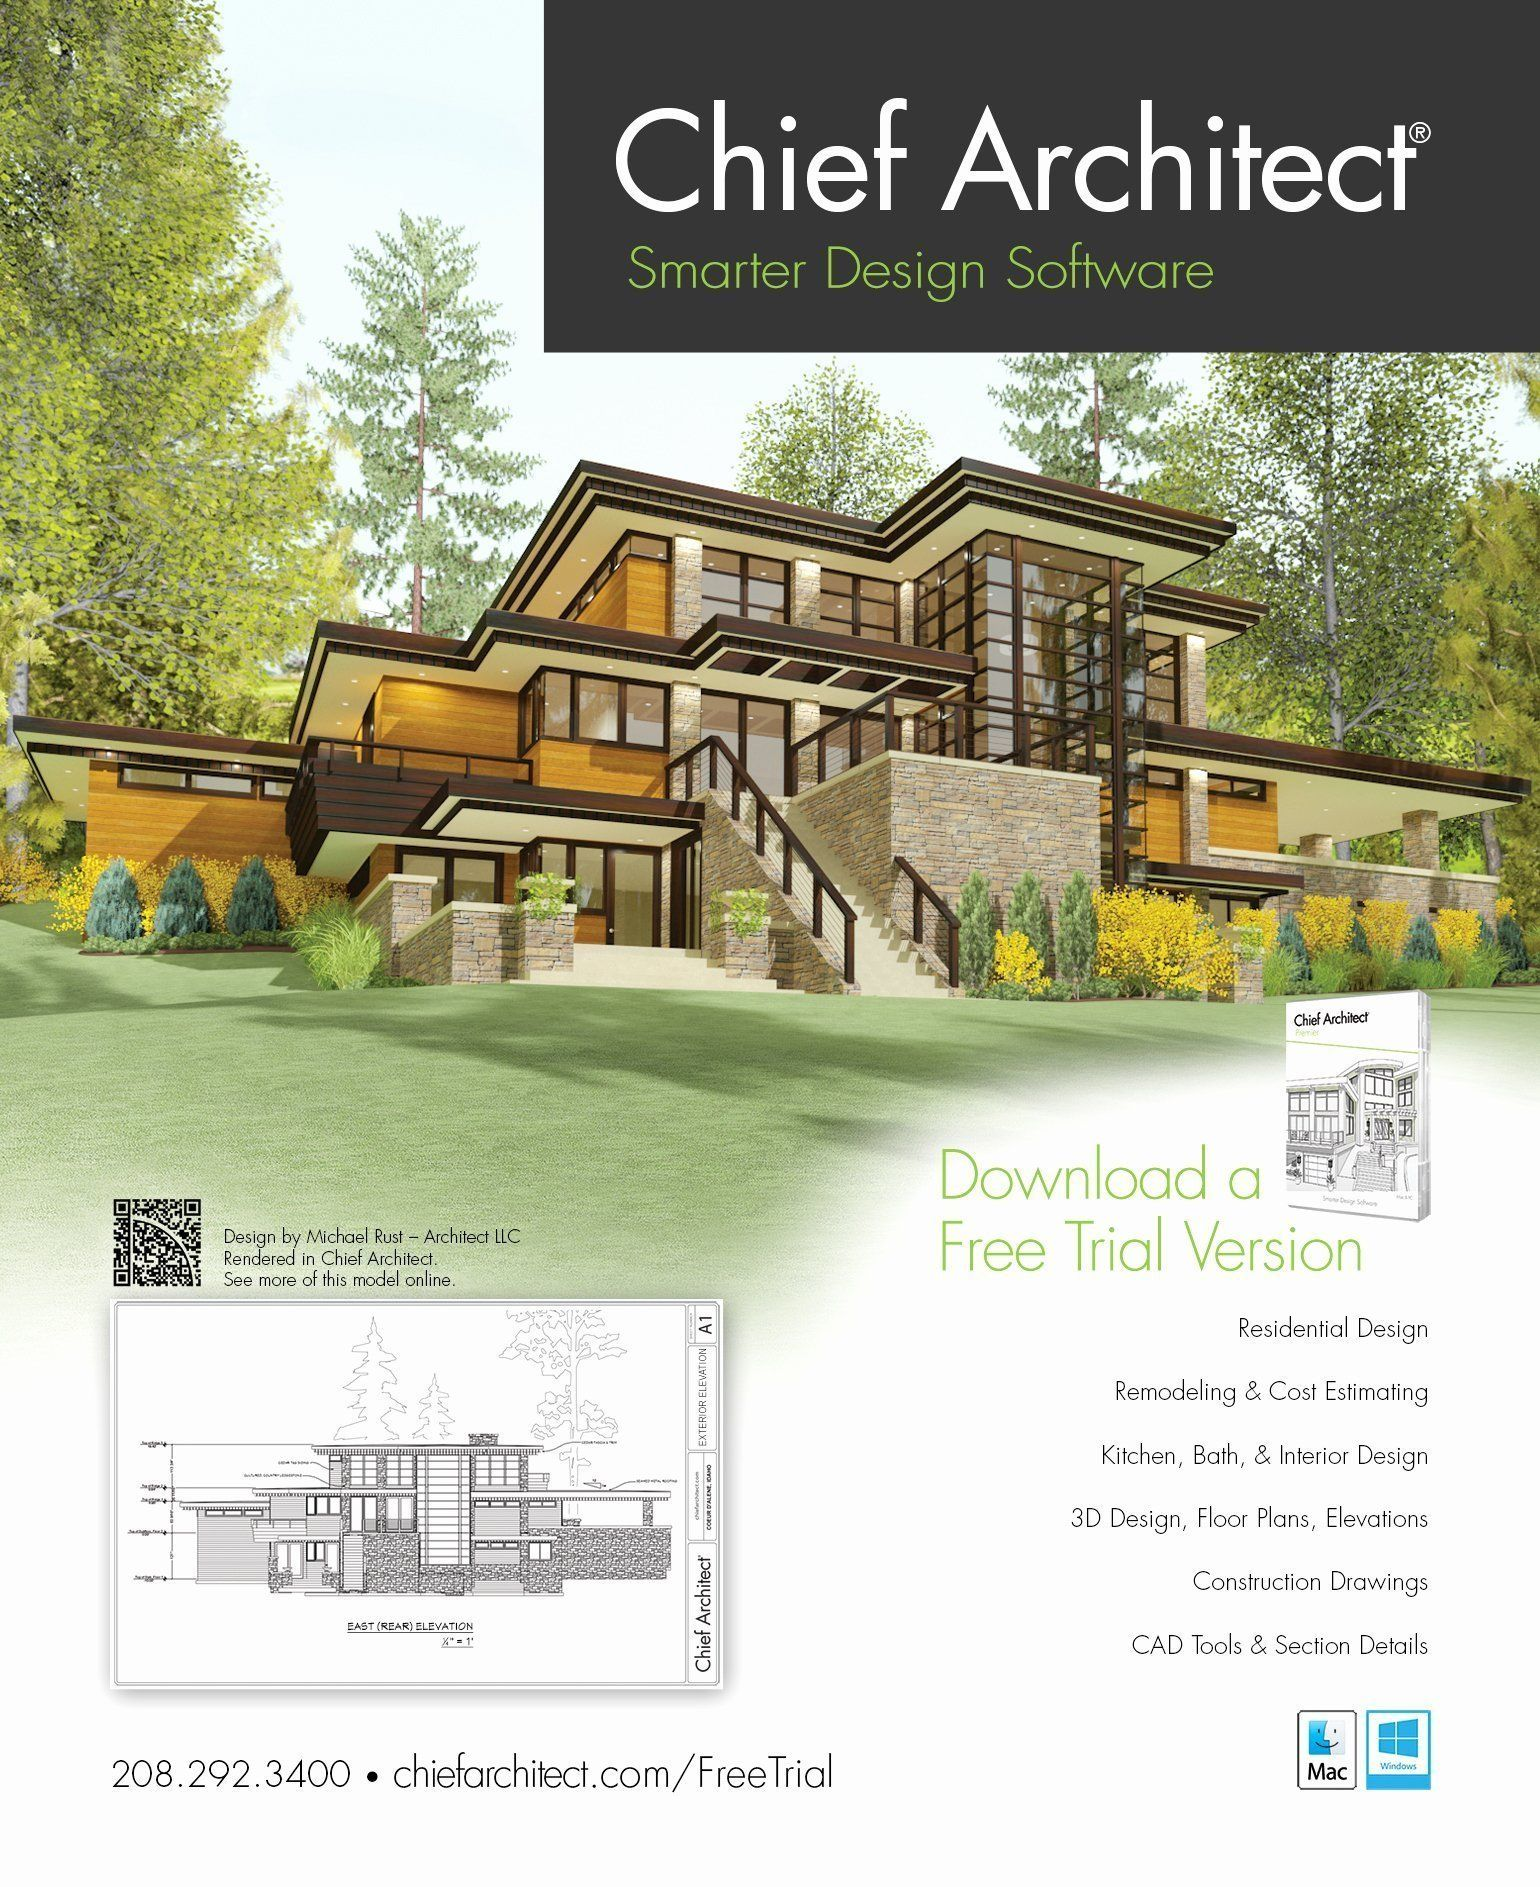 3d Home Design Online Awesome Chief Architect Home Design Software Ad Landscape Design Software Home Design Software Free 3d Home Design Software